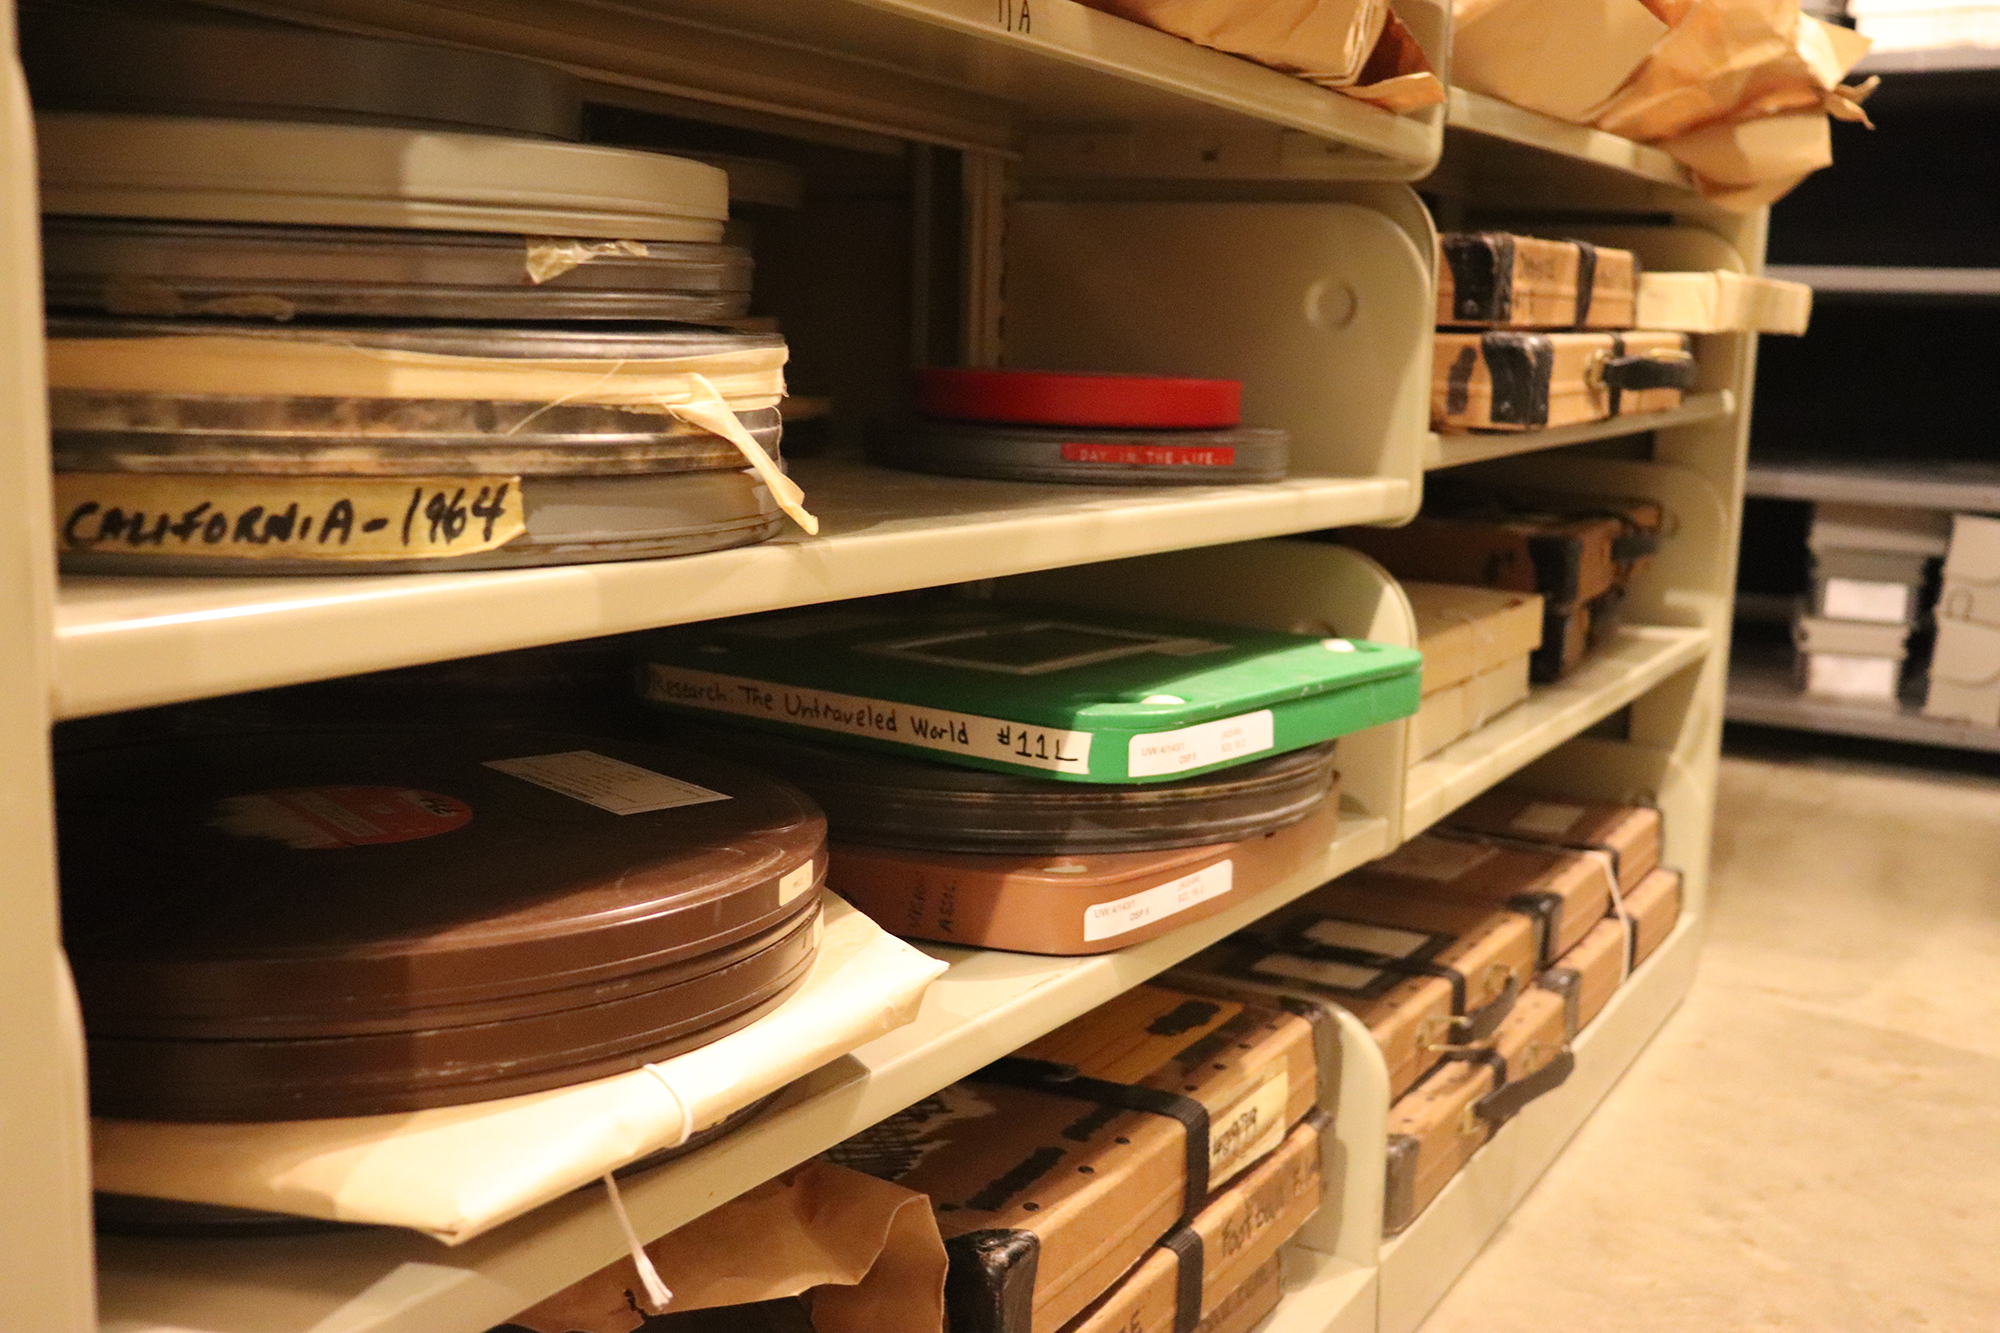 Film canisters in the old archives storage arrea in the basement of Lewis Hall. On Aug. 2, the University Archives began a long move to the second floor of Ellis Library.